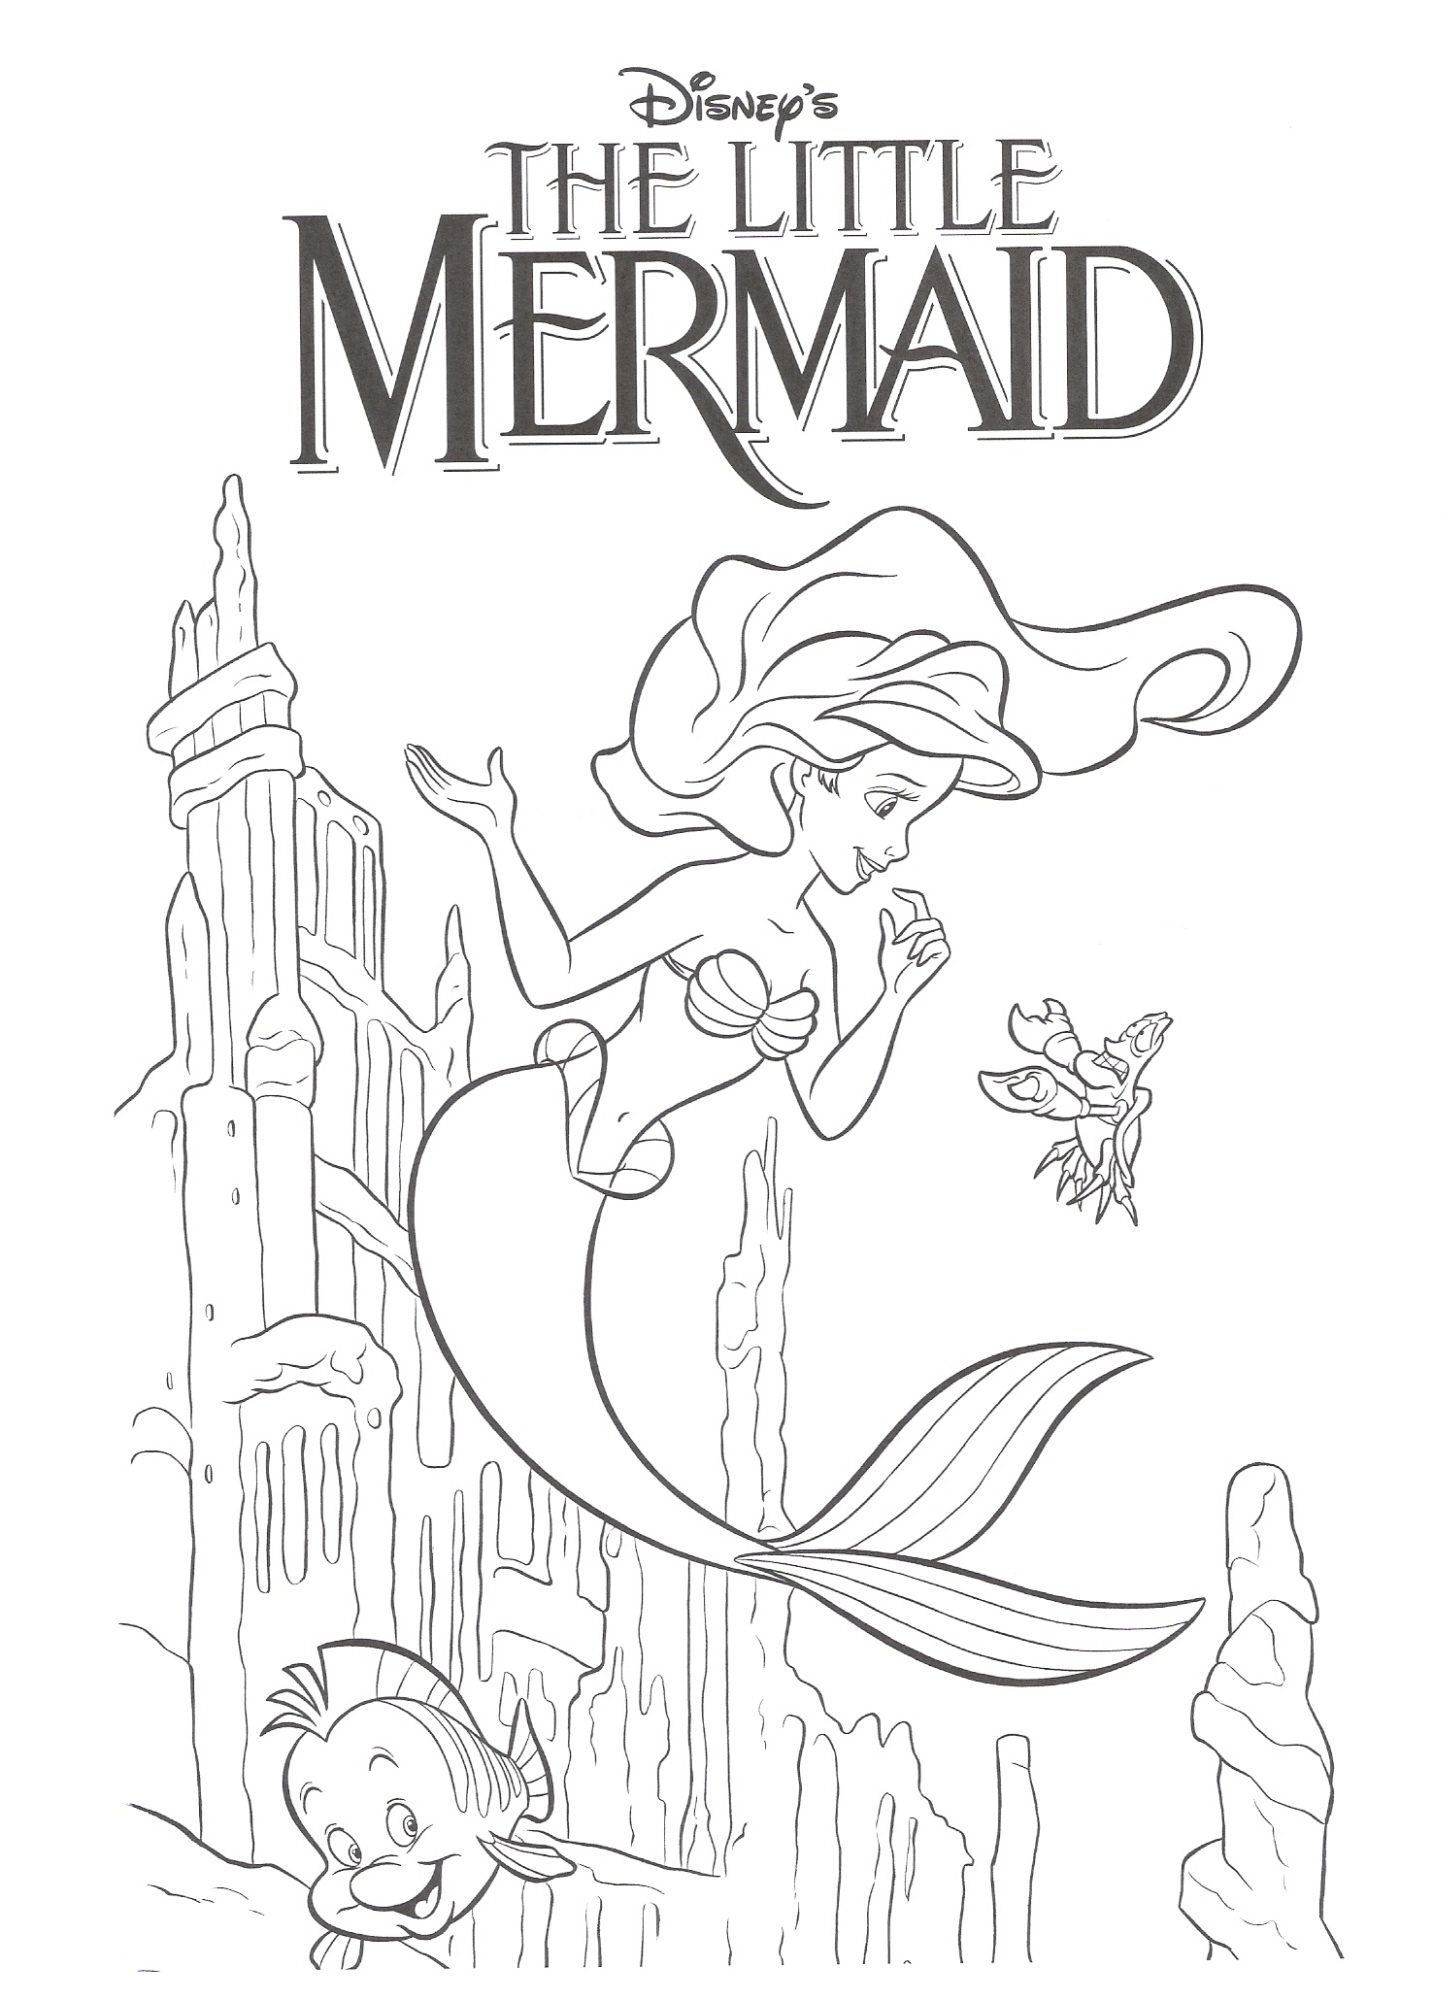 the little mermaid coloring pages princess coloring pages 37 - Little Mermaid Coloring Pages